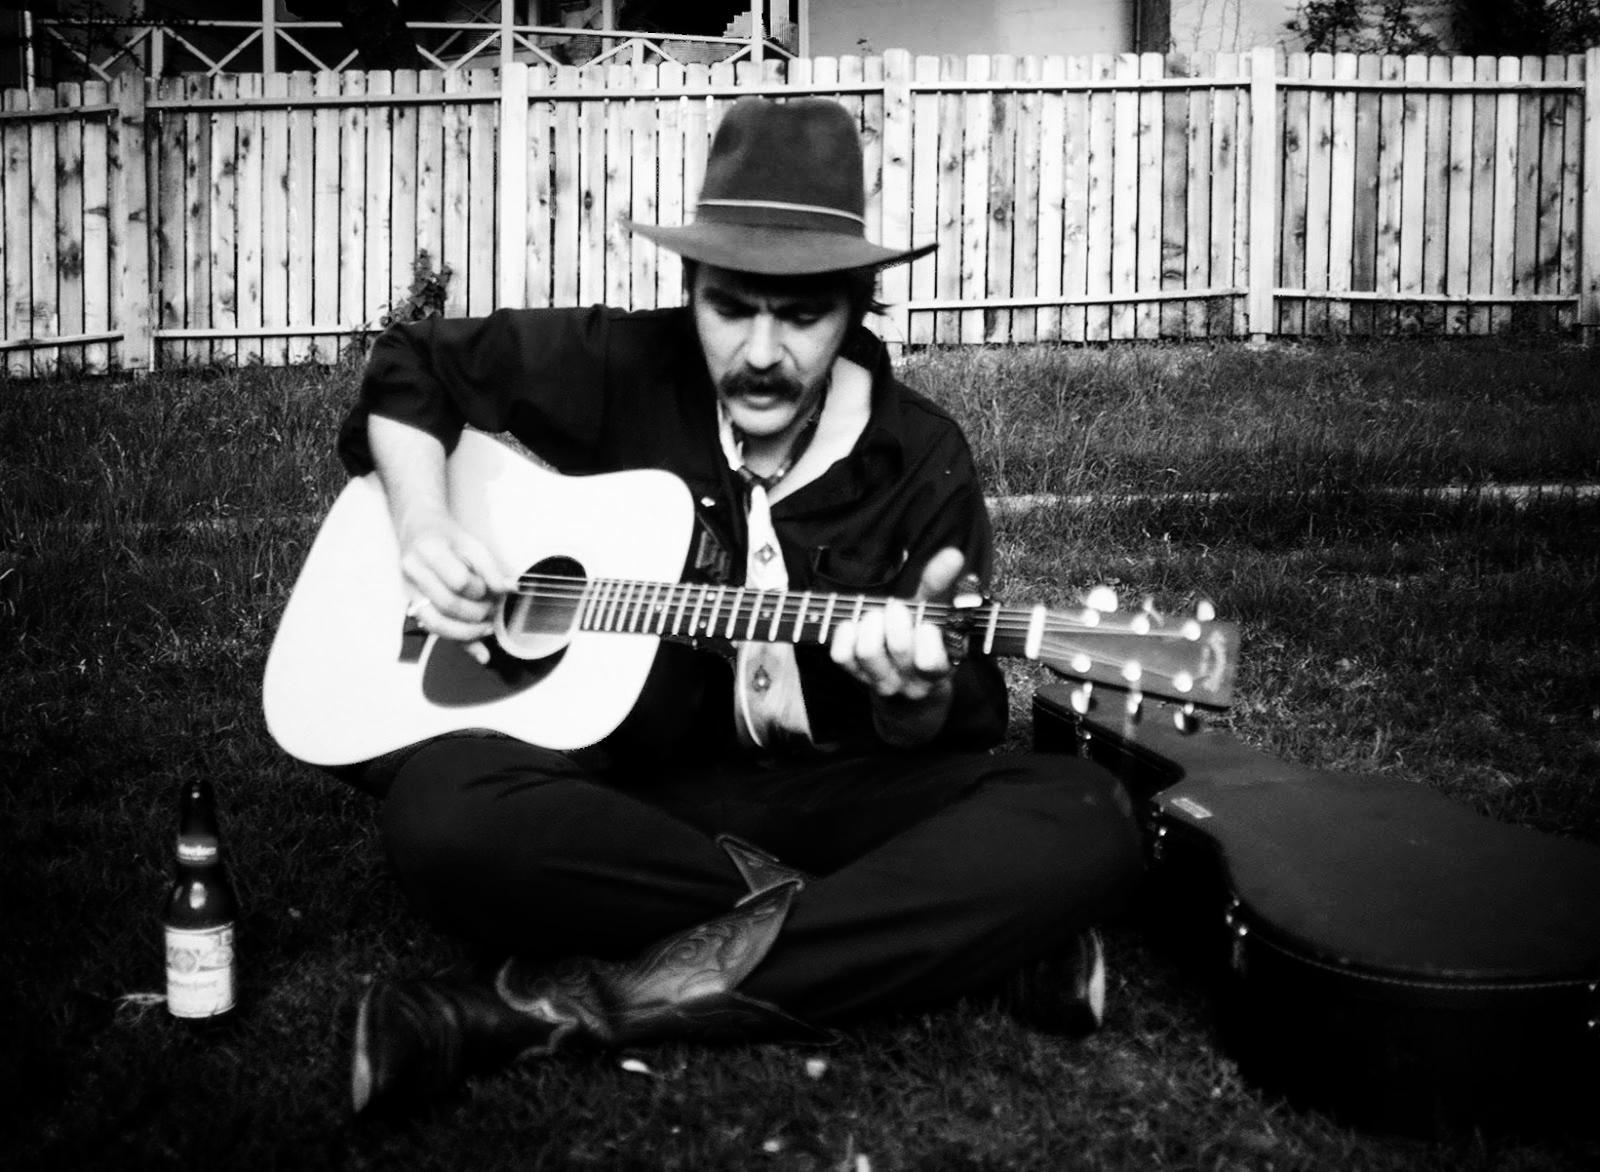 blaze foley song lyrics metrolyrics. Black Bedroom Furniture Sets. Home Design Ideas